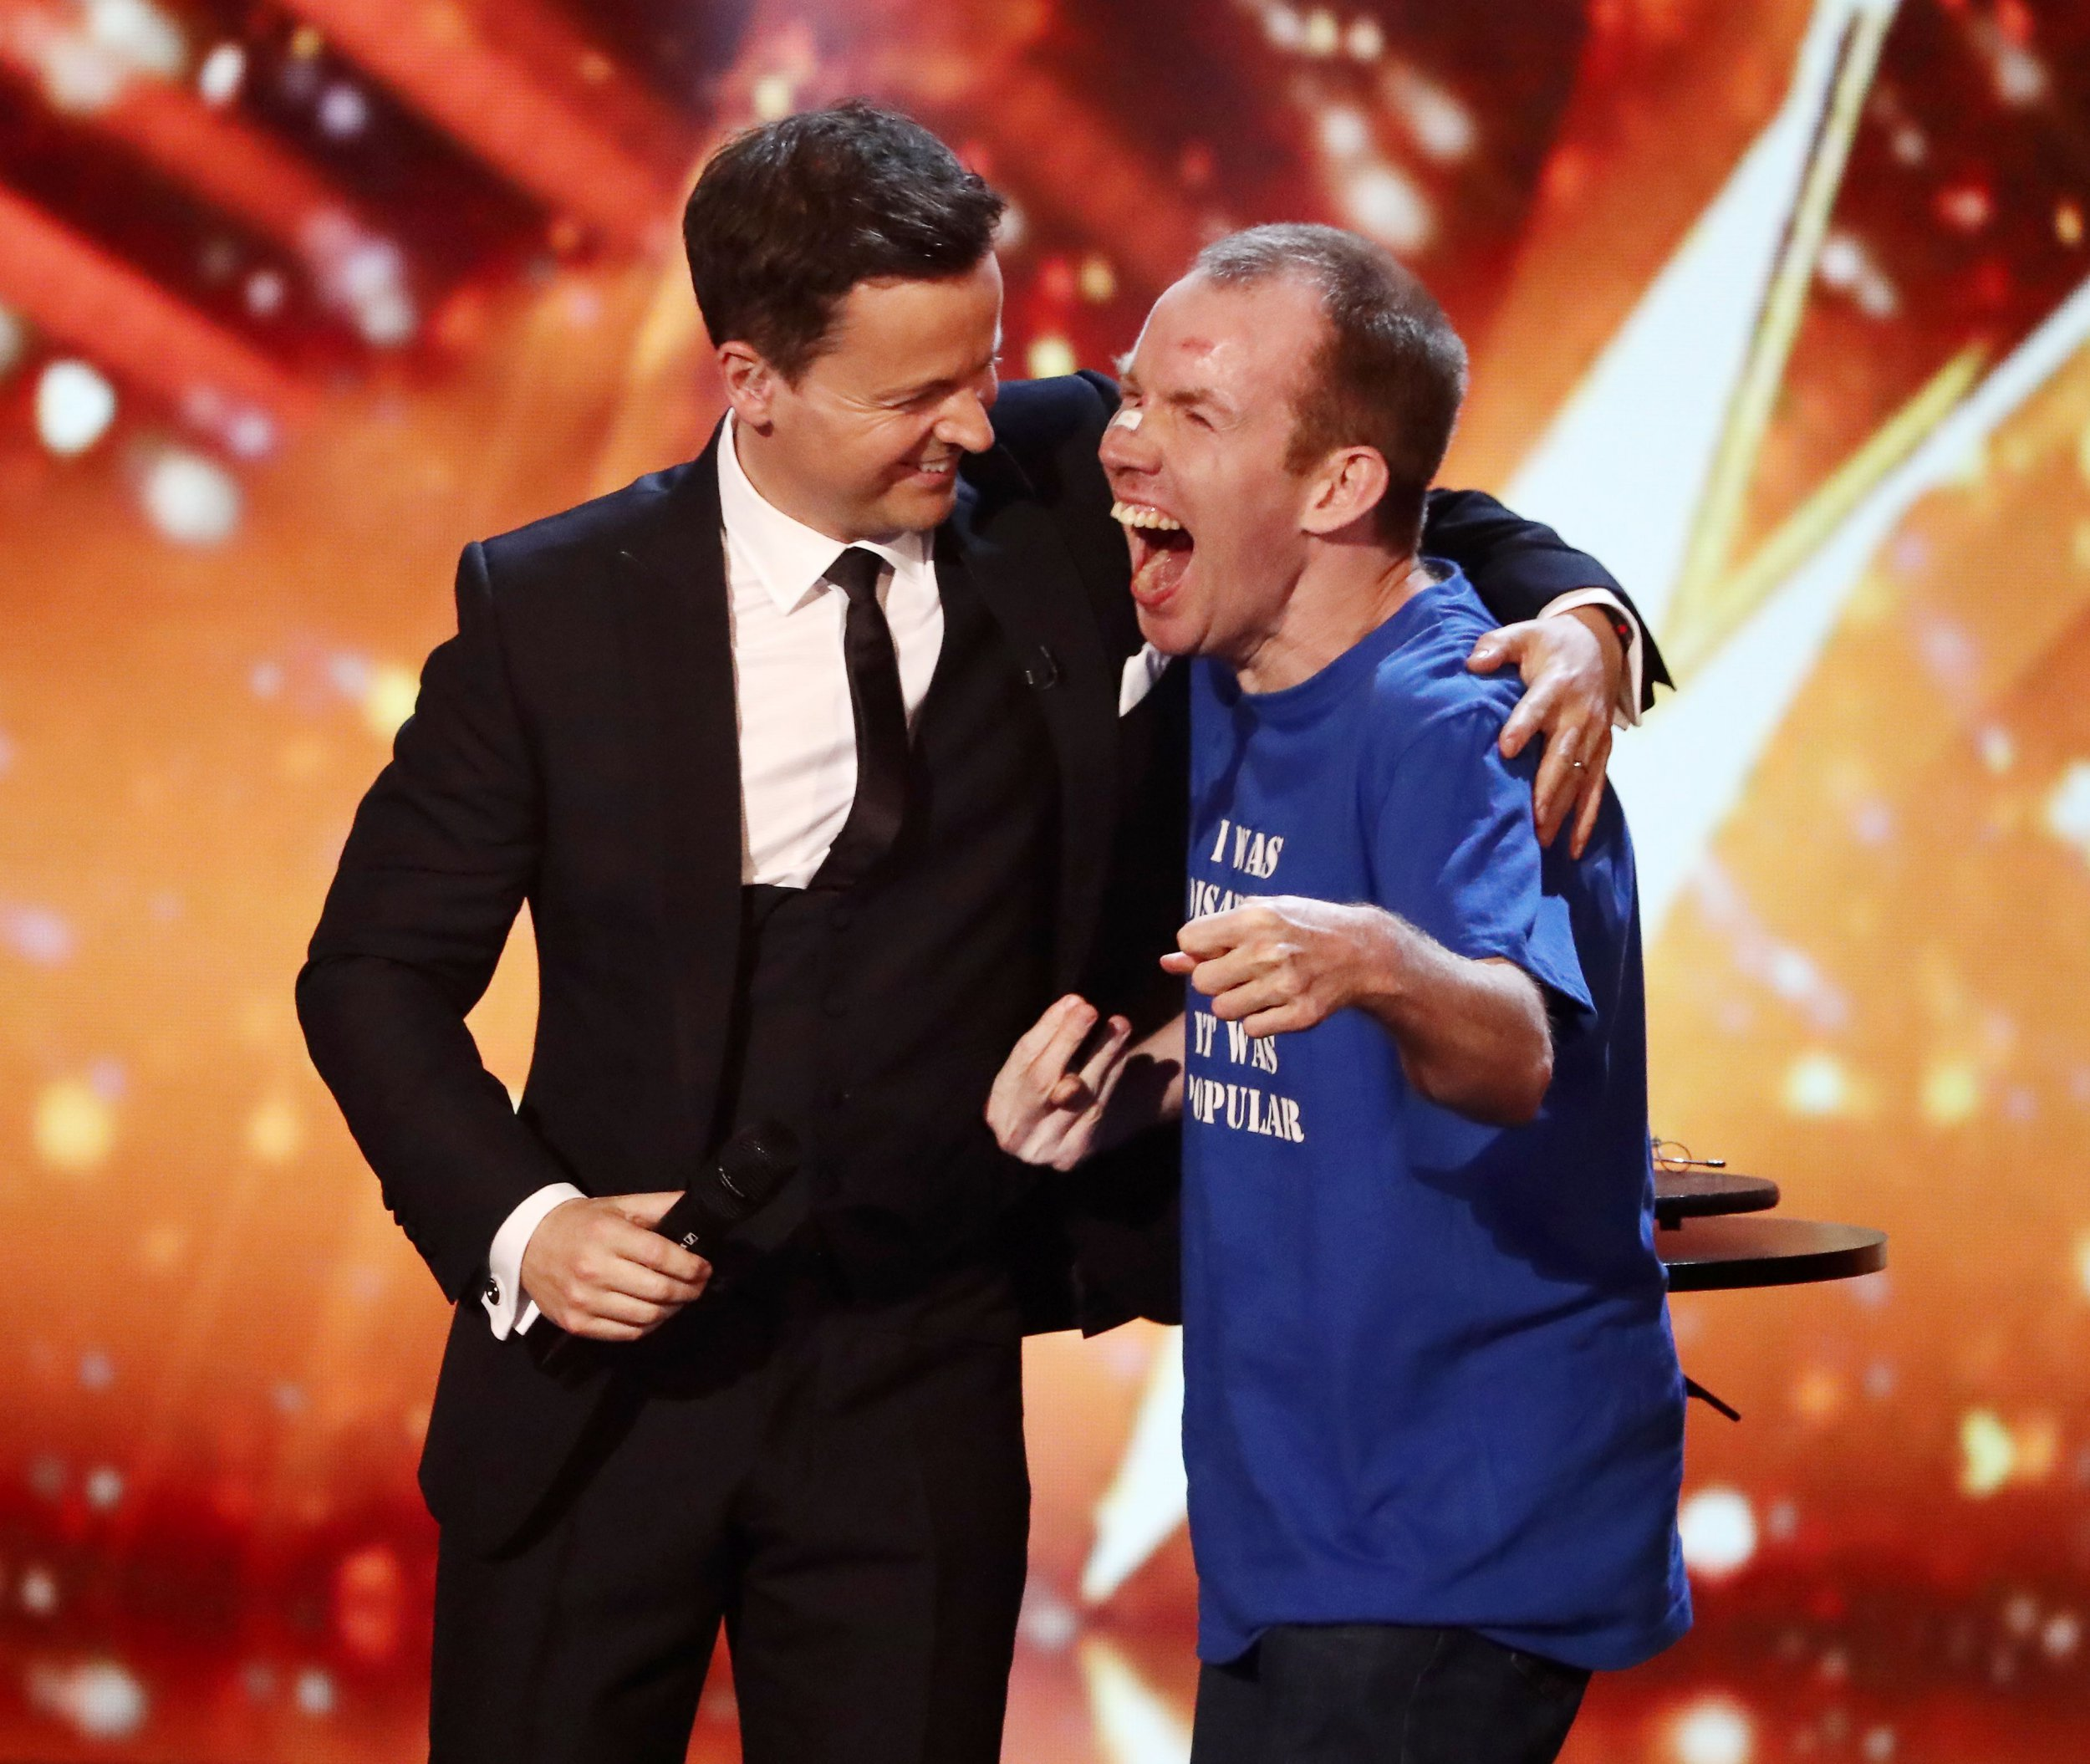 Editorial use only. No book publishing Mandatory Credit: Photo by Dymond/Thames/Syco/REX/Shutterstock (9699621jx) Lost Voice Guy celebrates winning Britain's Got Talent with Declan Donnelly 'Britain's Got Talent' TV show, Series 12, Episode 13, The Final, London, UK - 03 Jun 2018